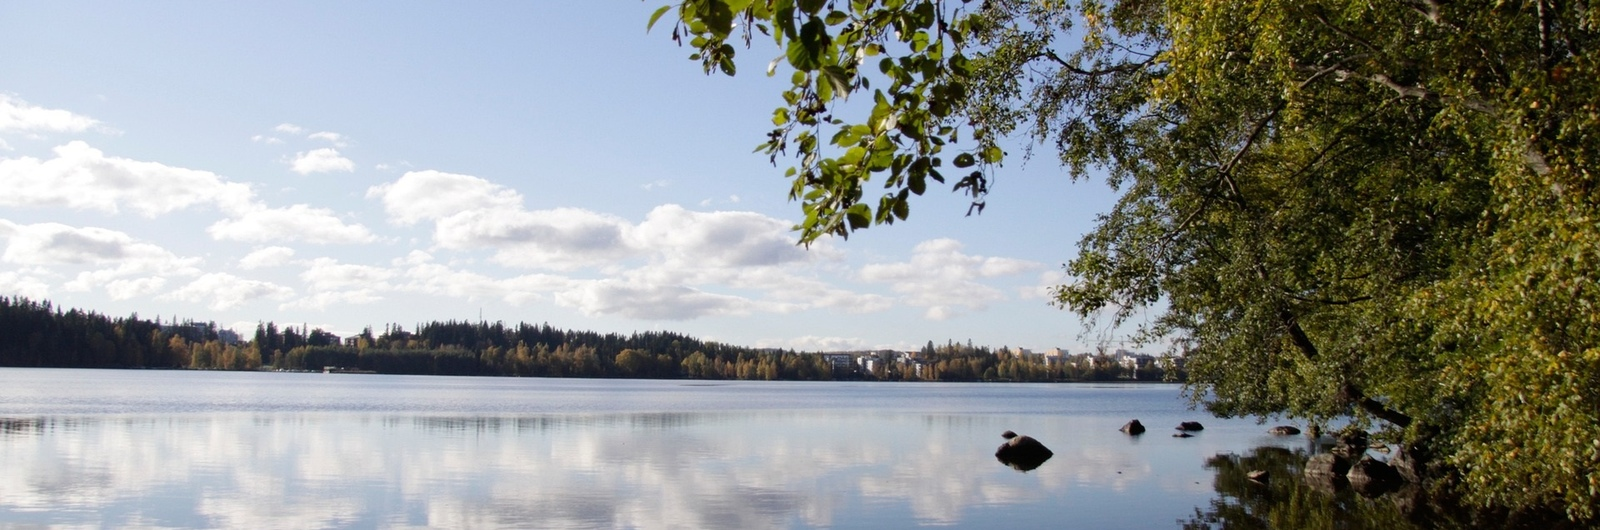 tampere city header